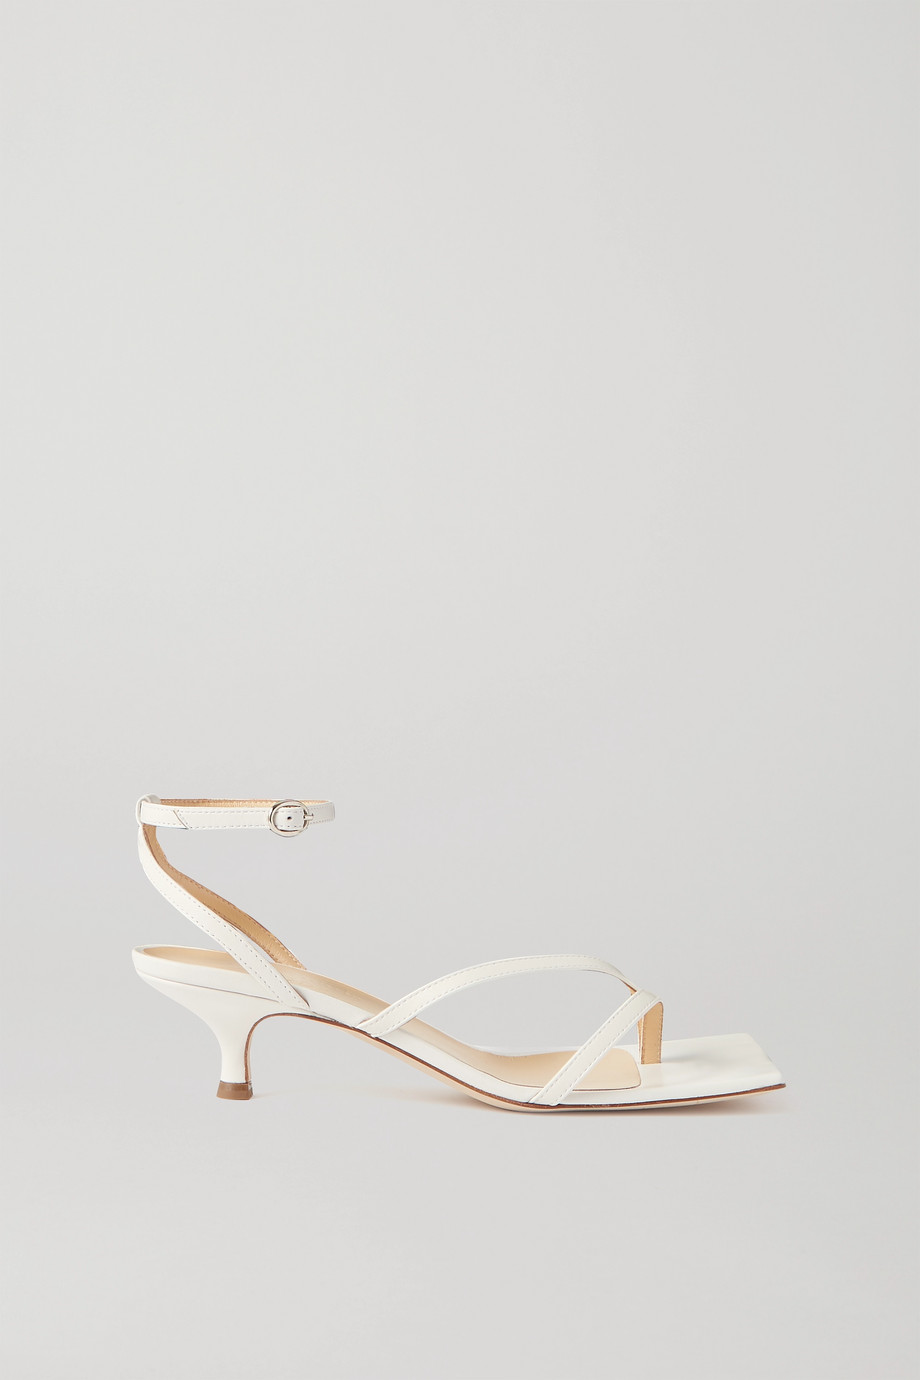 A.W.A.K.E. MODE Delta Low leather sandals